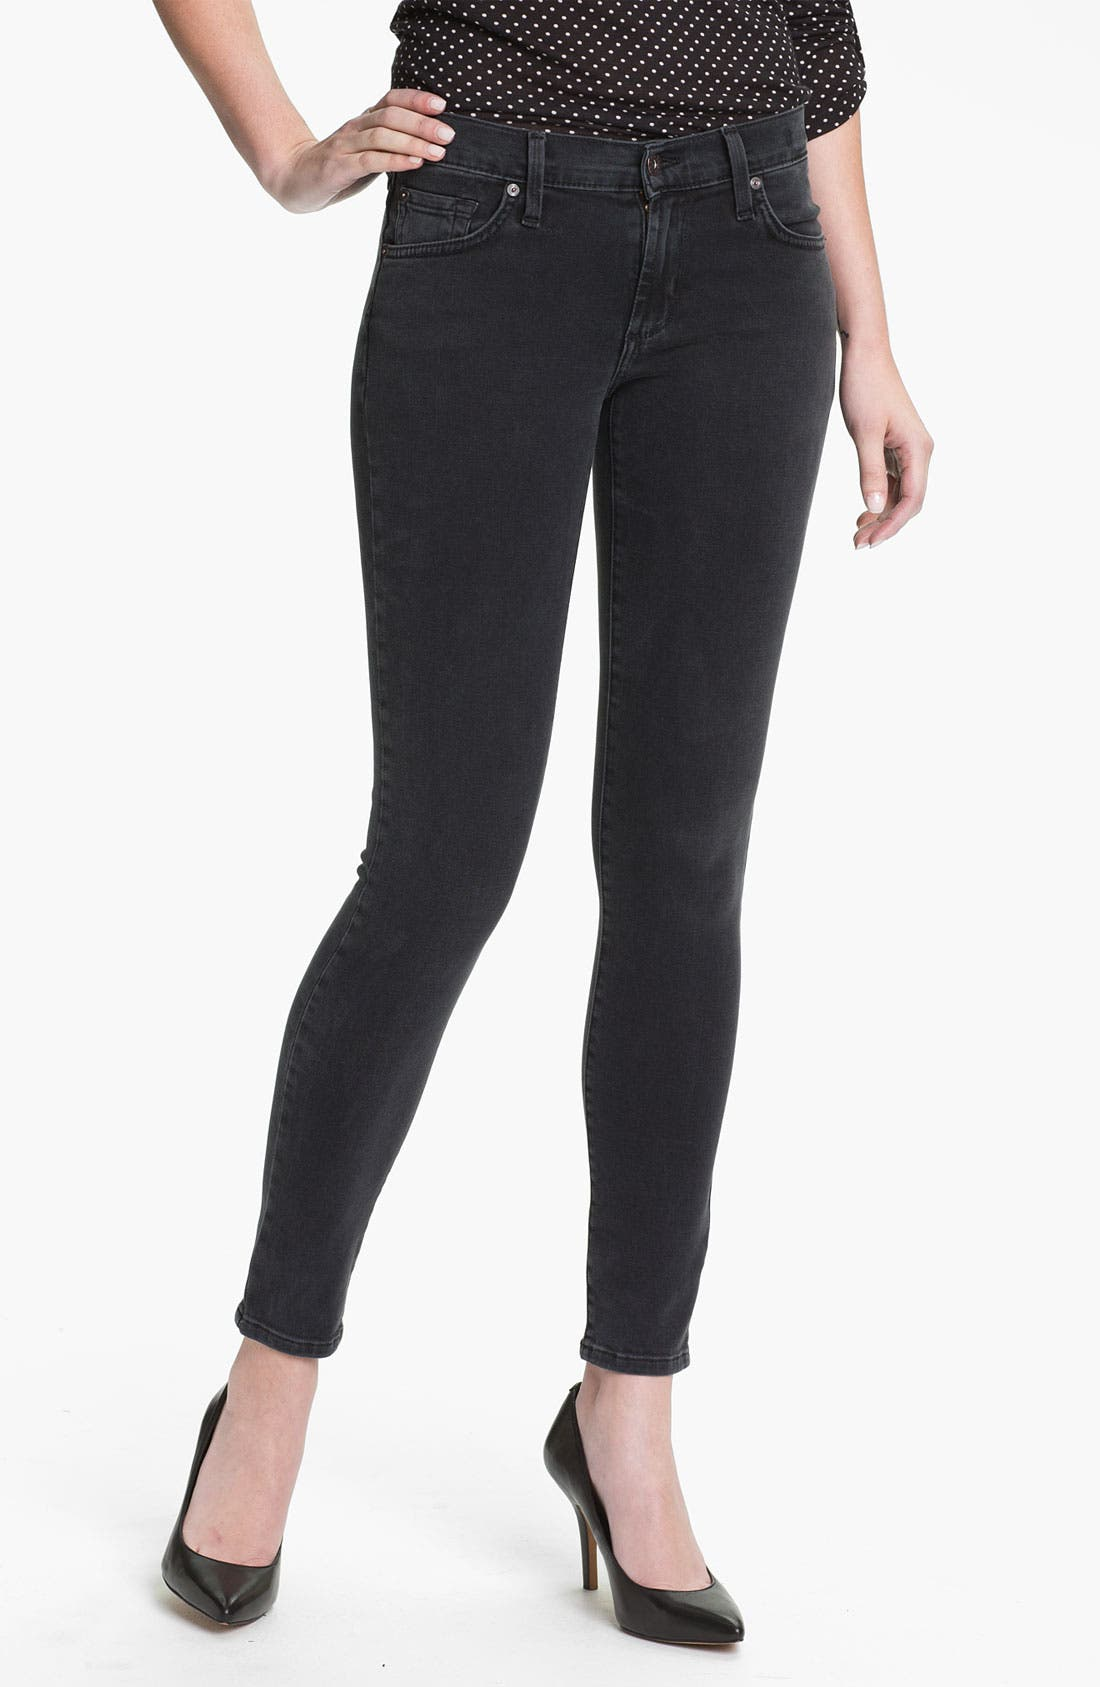 Main Image - James Jeans Stretch Denim Leggings (Petite) (Online Exclusive)